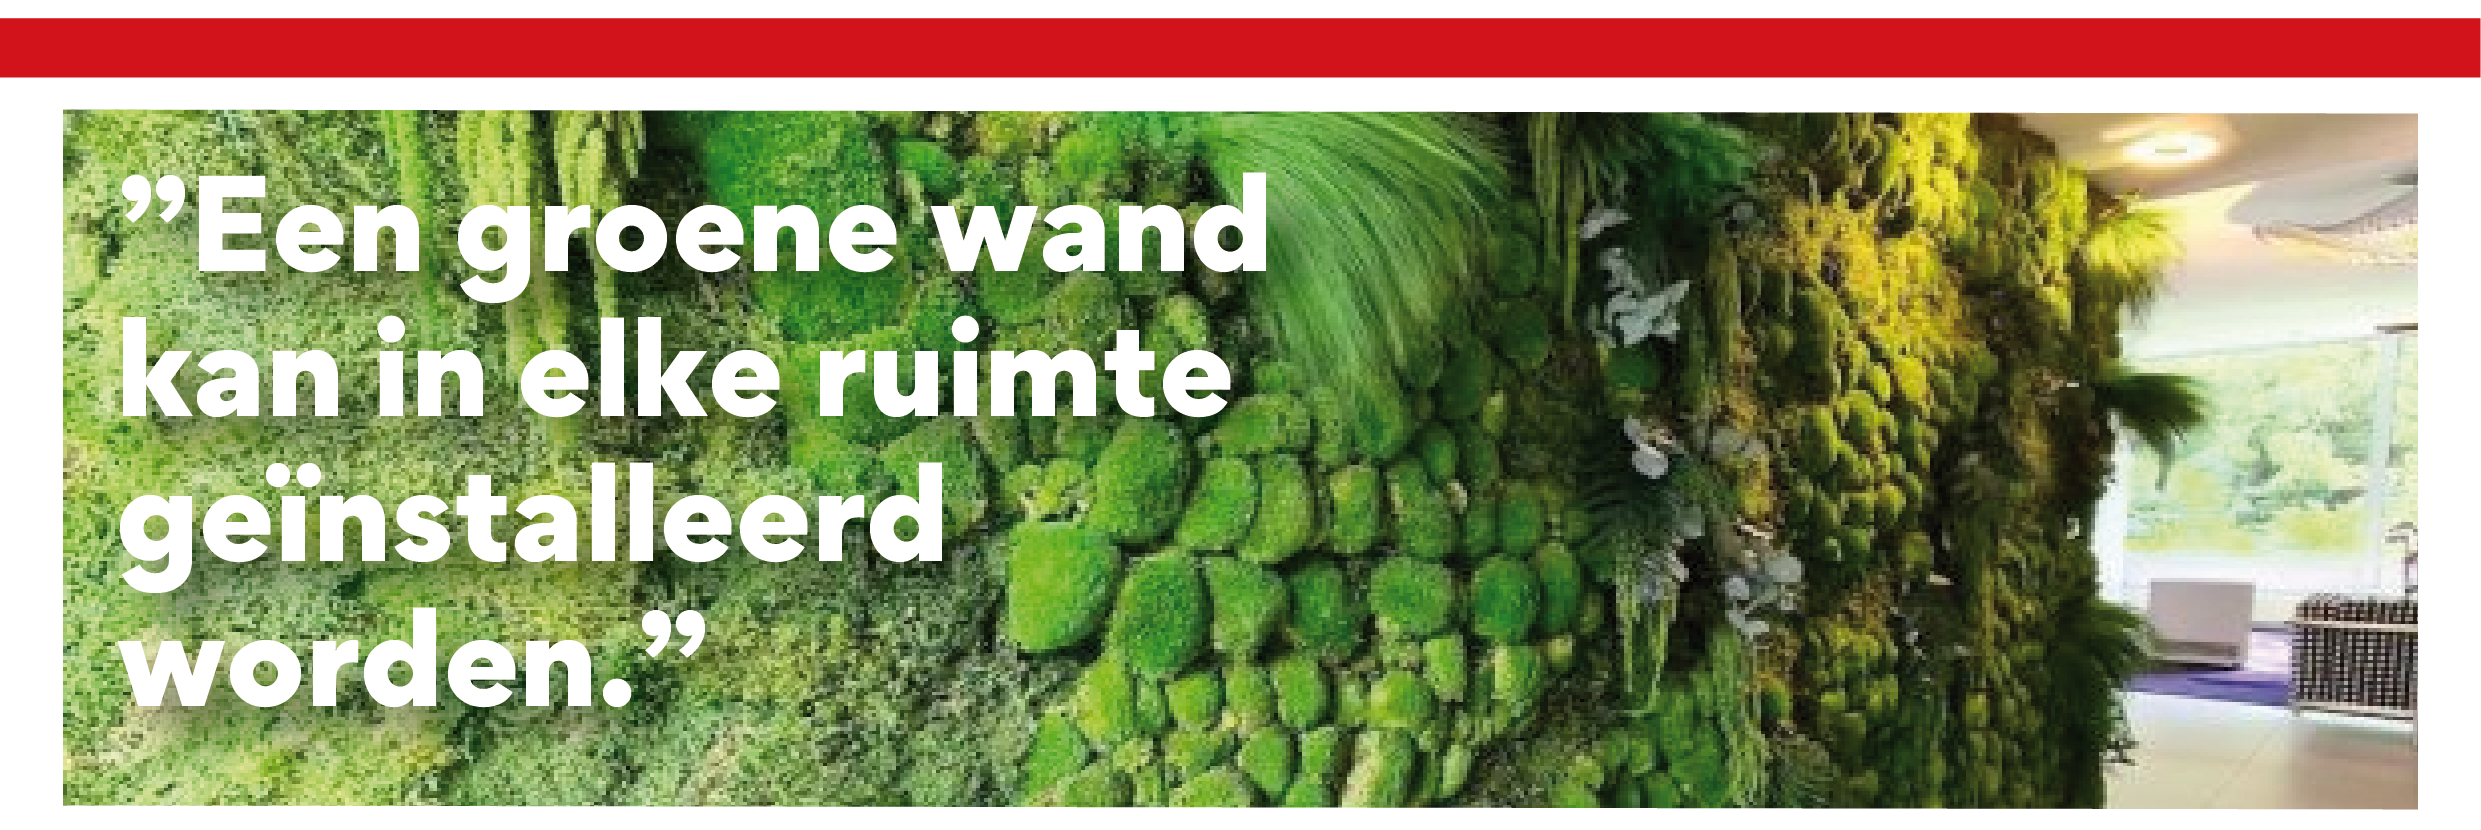 https://alternativ.nl/wp-content/uploads/2020/09/Groene-wand-website-2.png